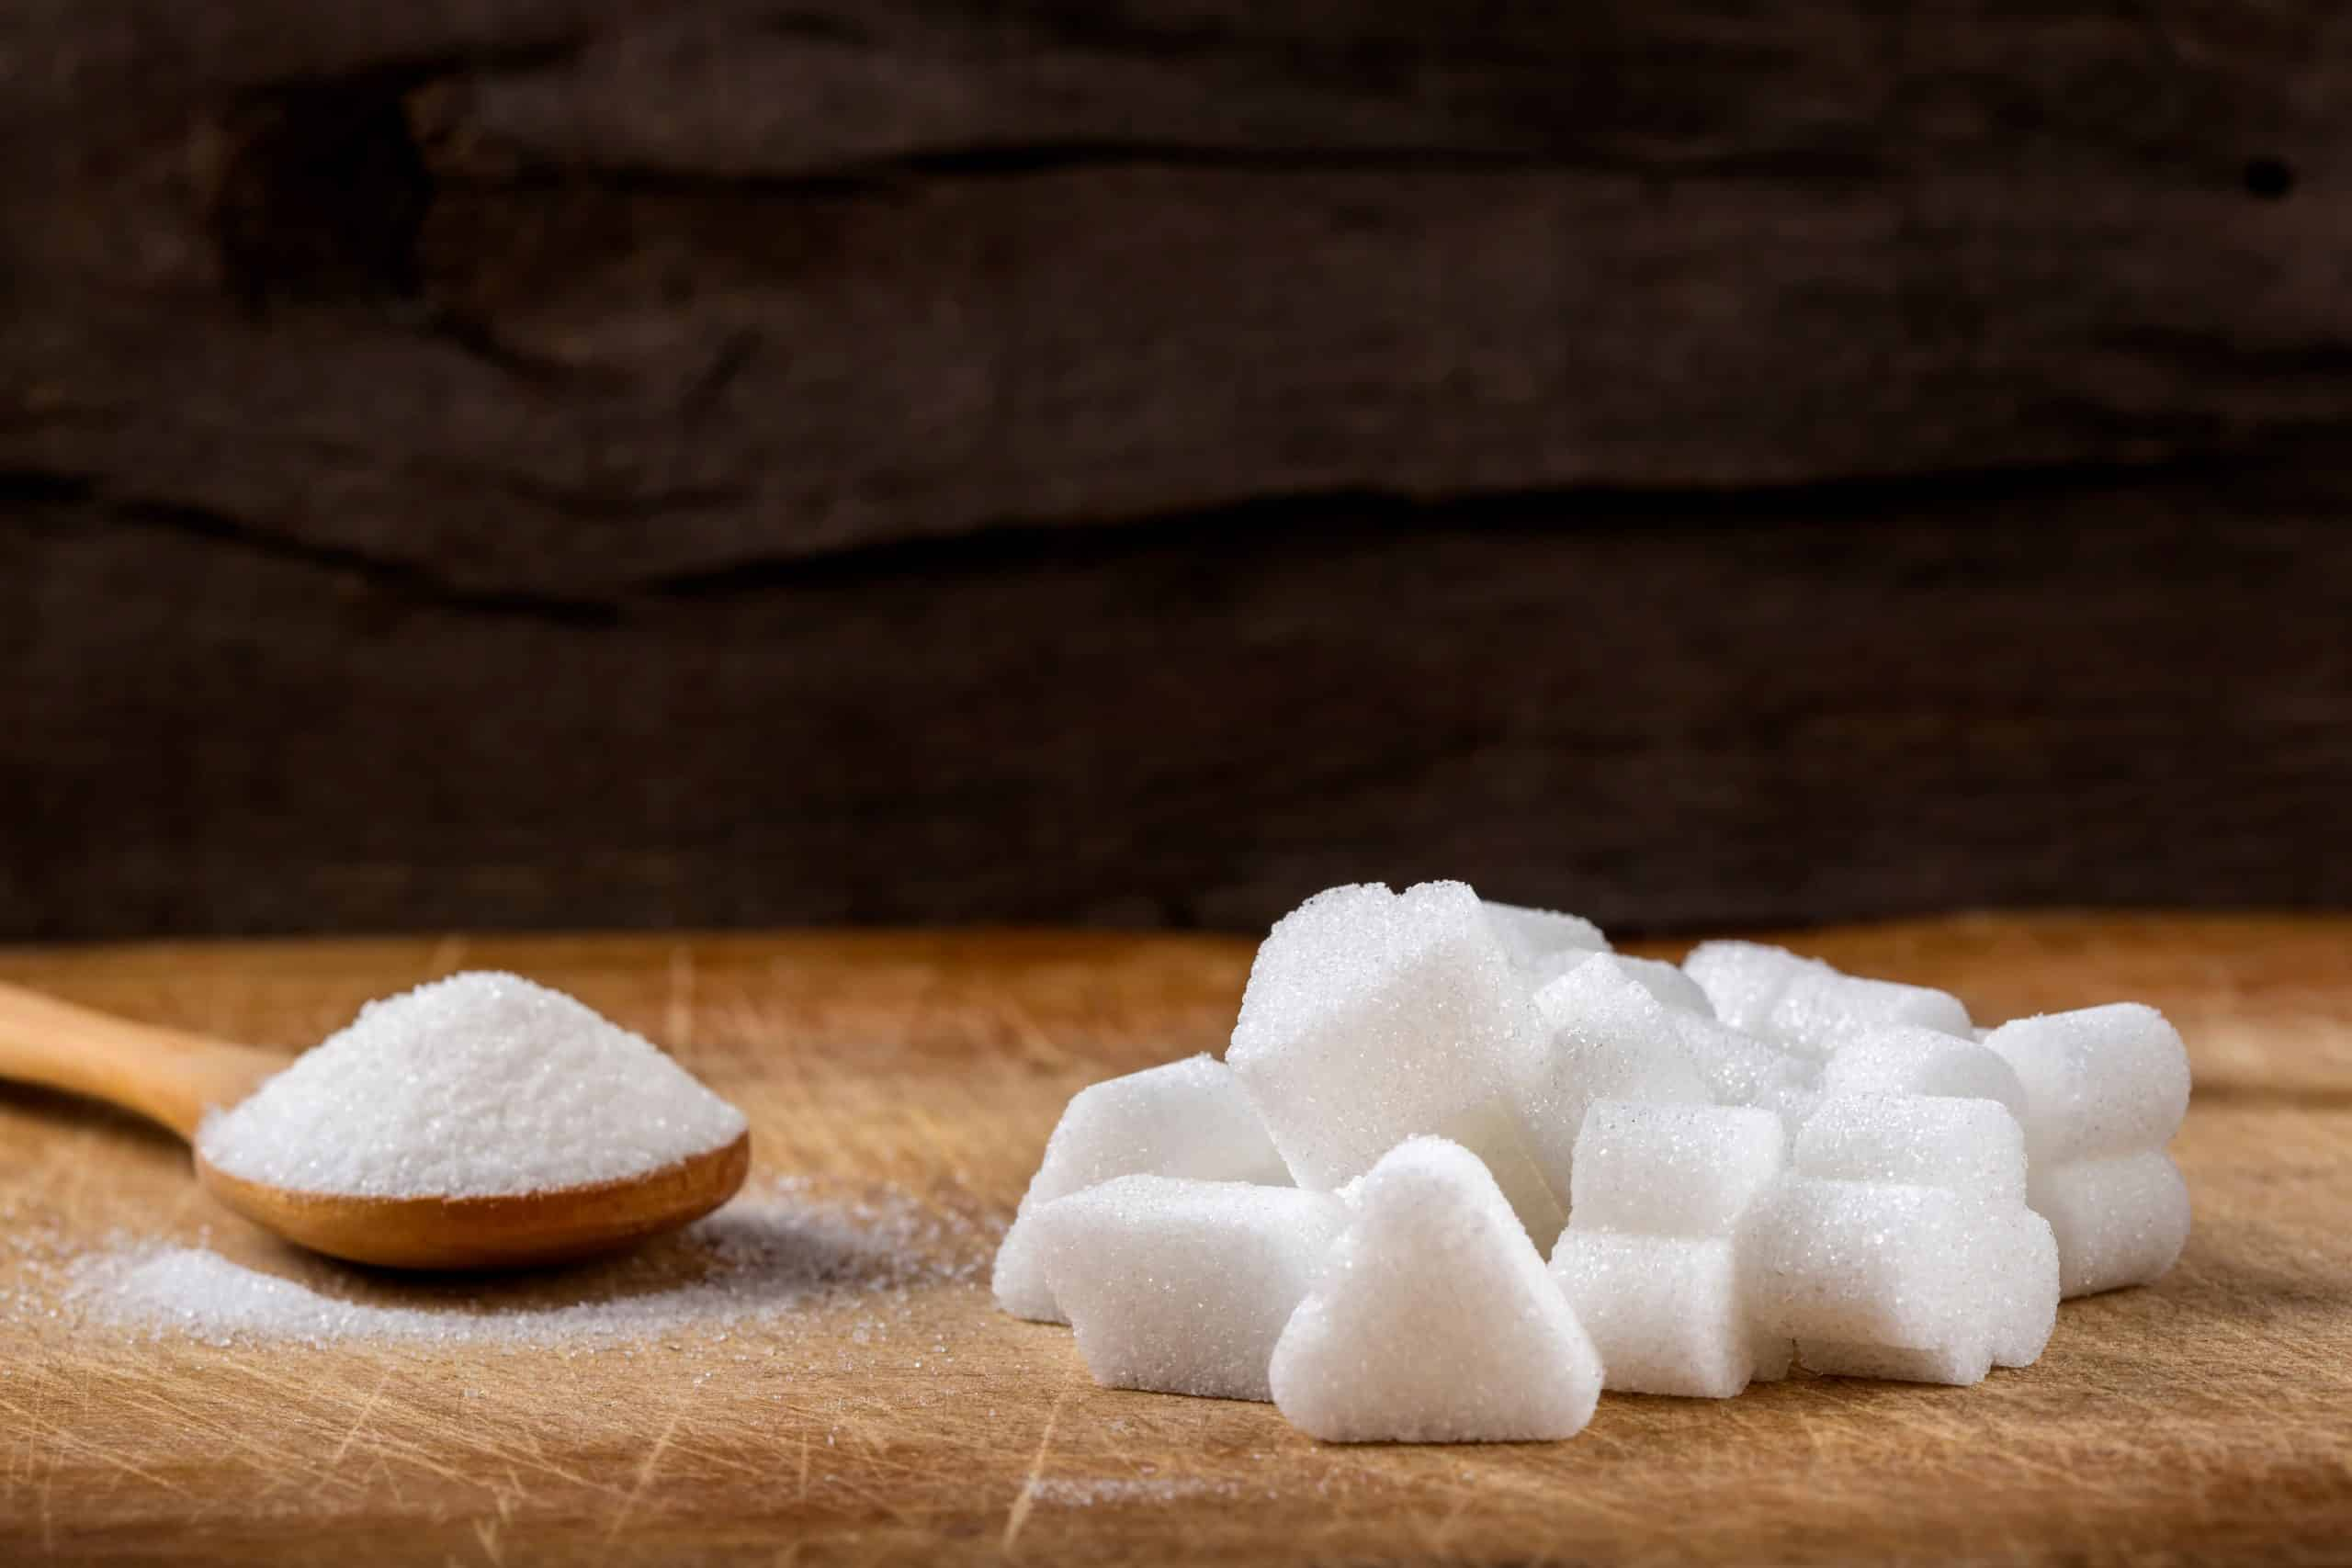 Heap of different sugar cubes shapes and one wooden spoon filled with sugar in background